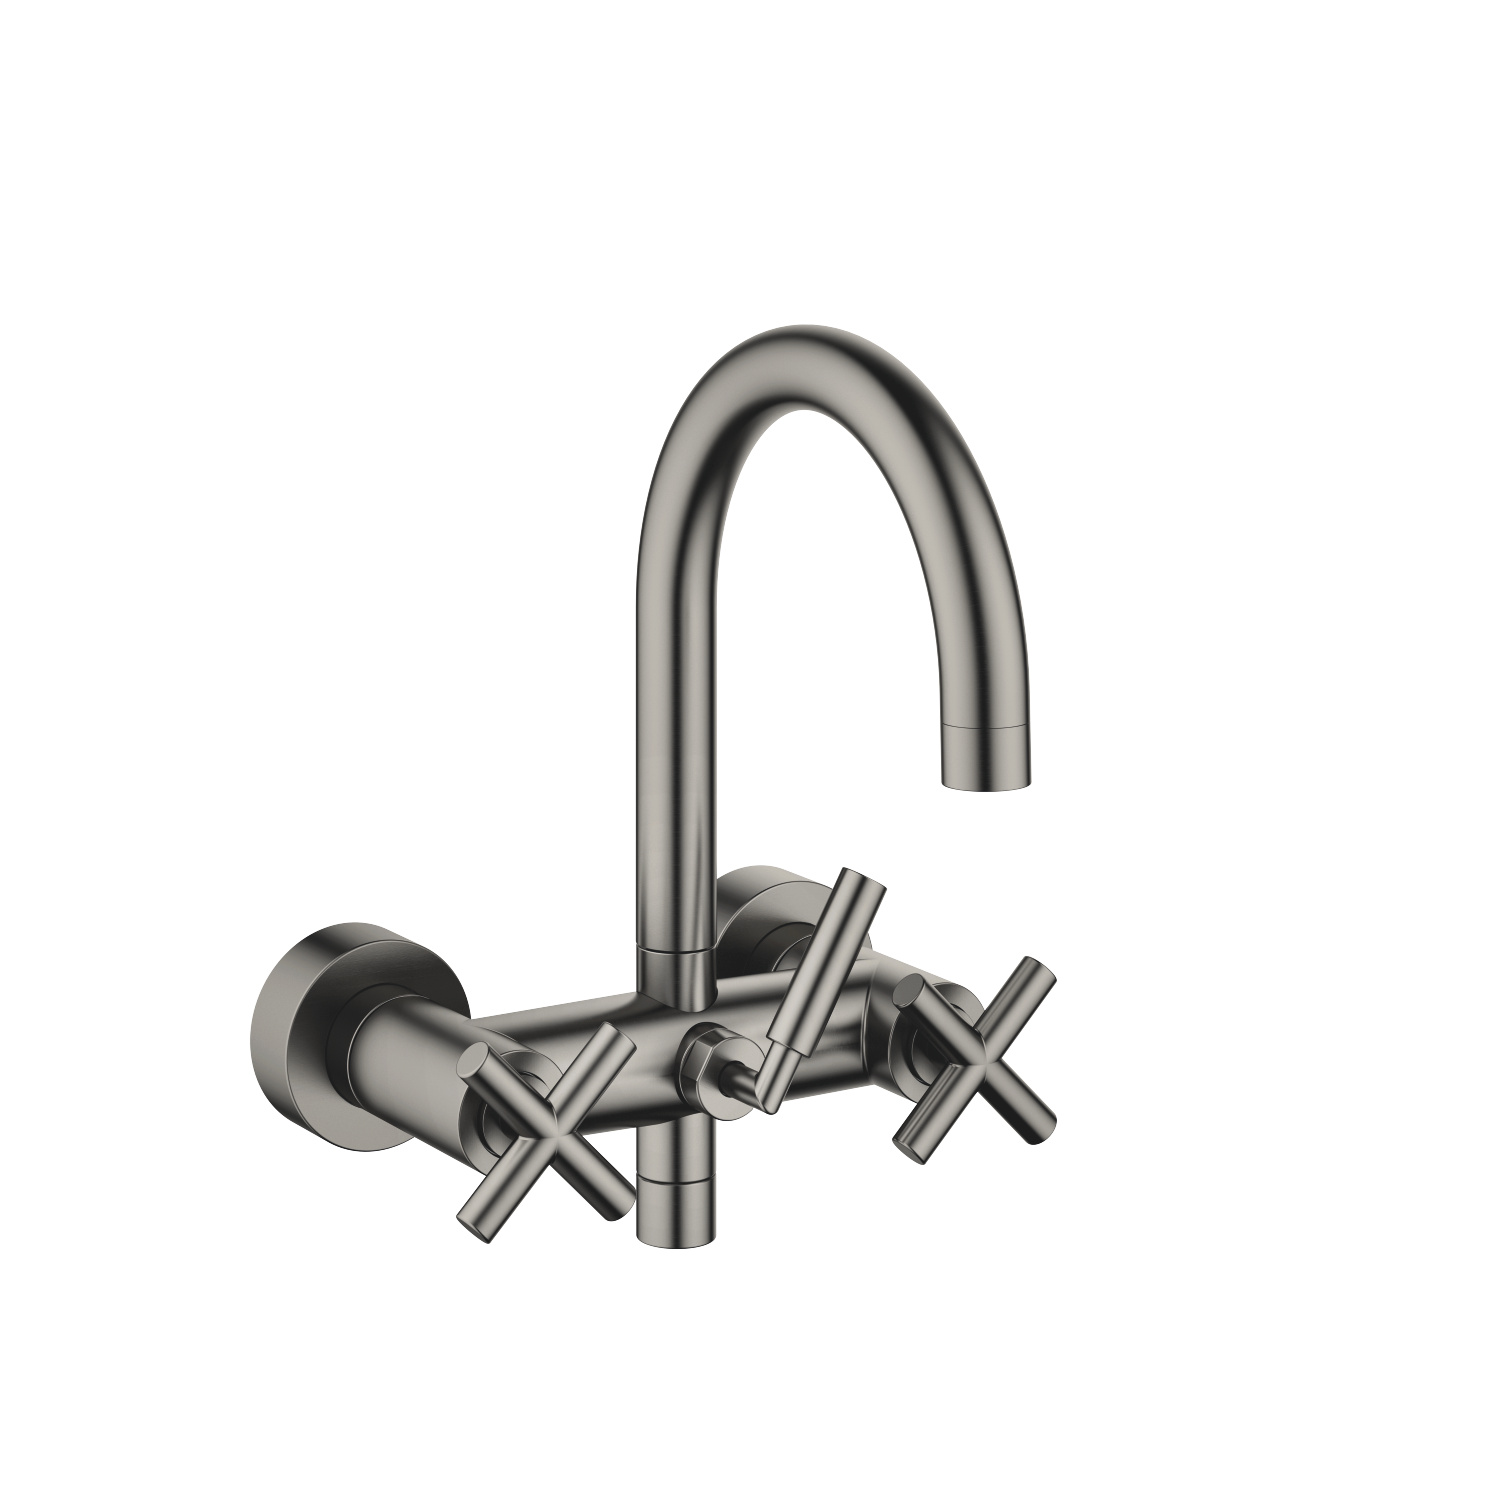 Bath mixer for wall mounting - Dark Platinum matt - 25 100 892-99